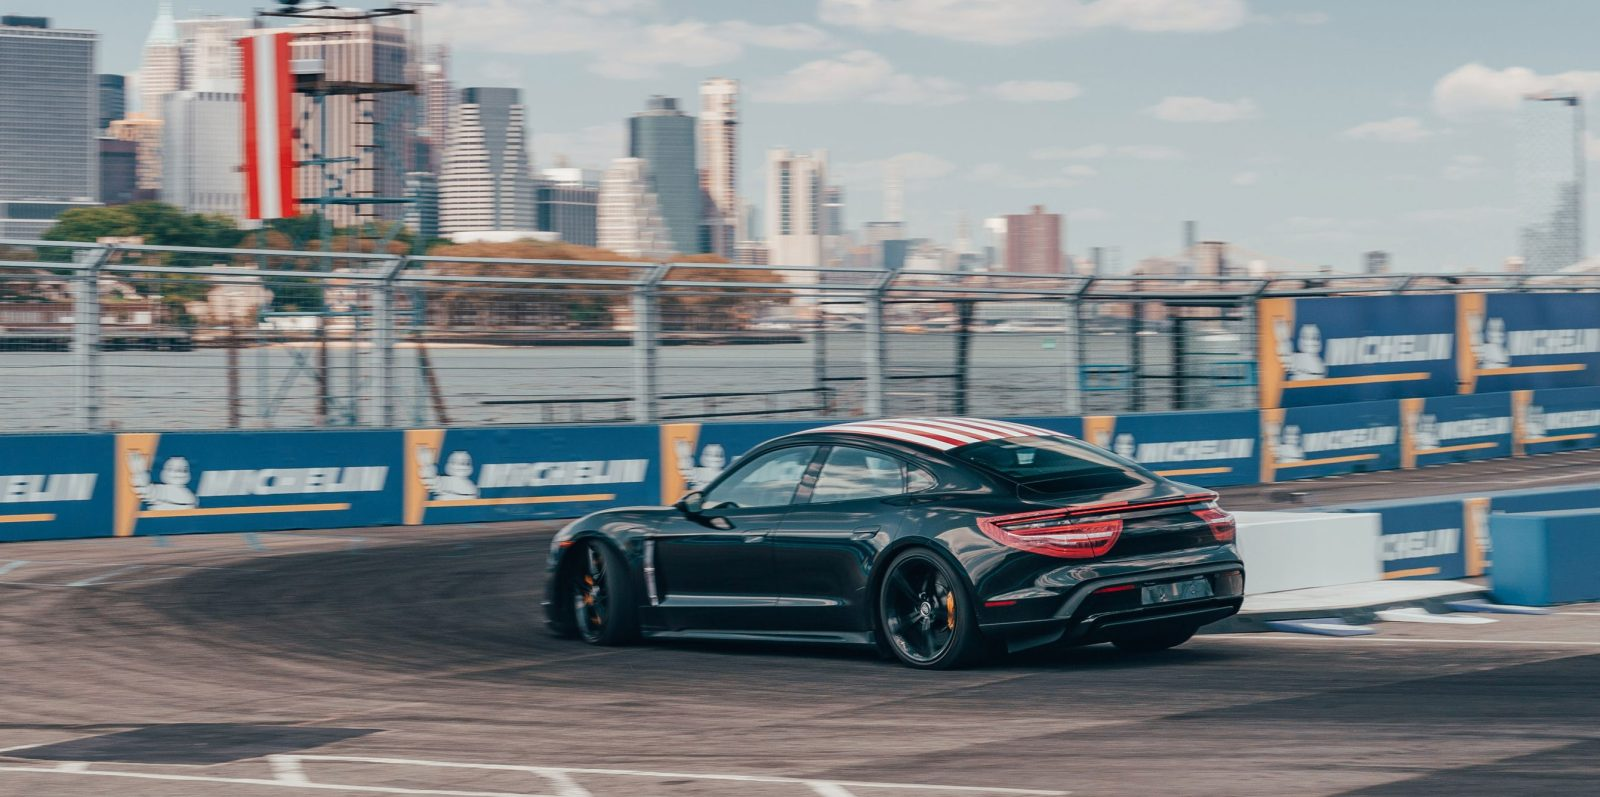 Porsche releases bizarre ad about going electric, Taycan makes Formula E appearance